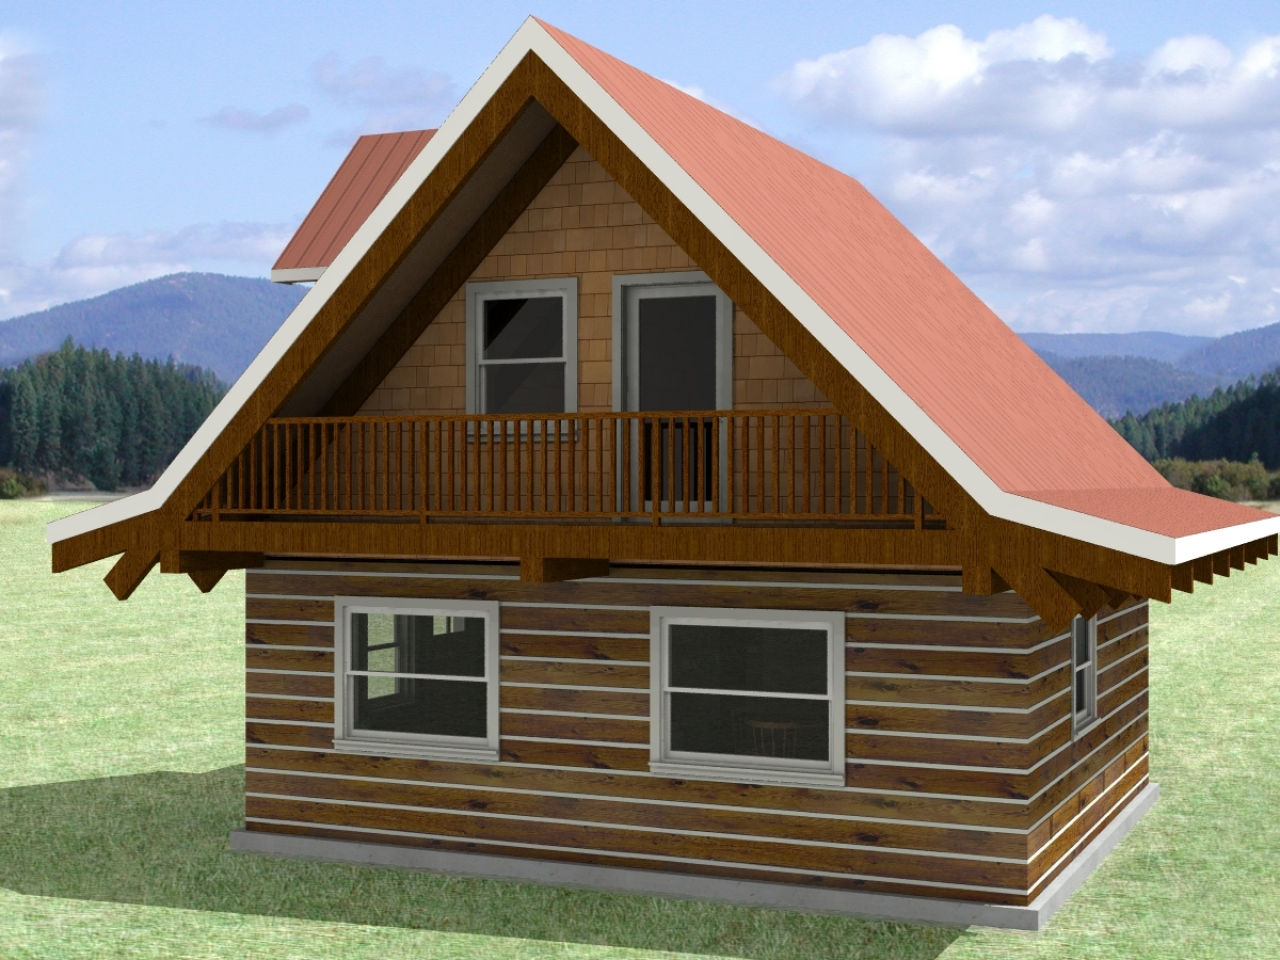 Tiny Log Home Designs: Small Log Cabin Homes Interior Small Log Cabin House Floor